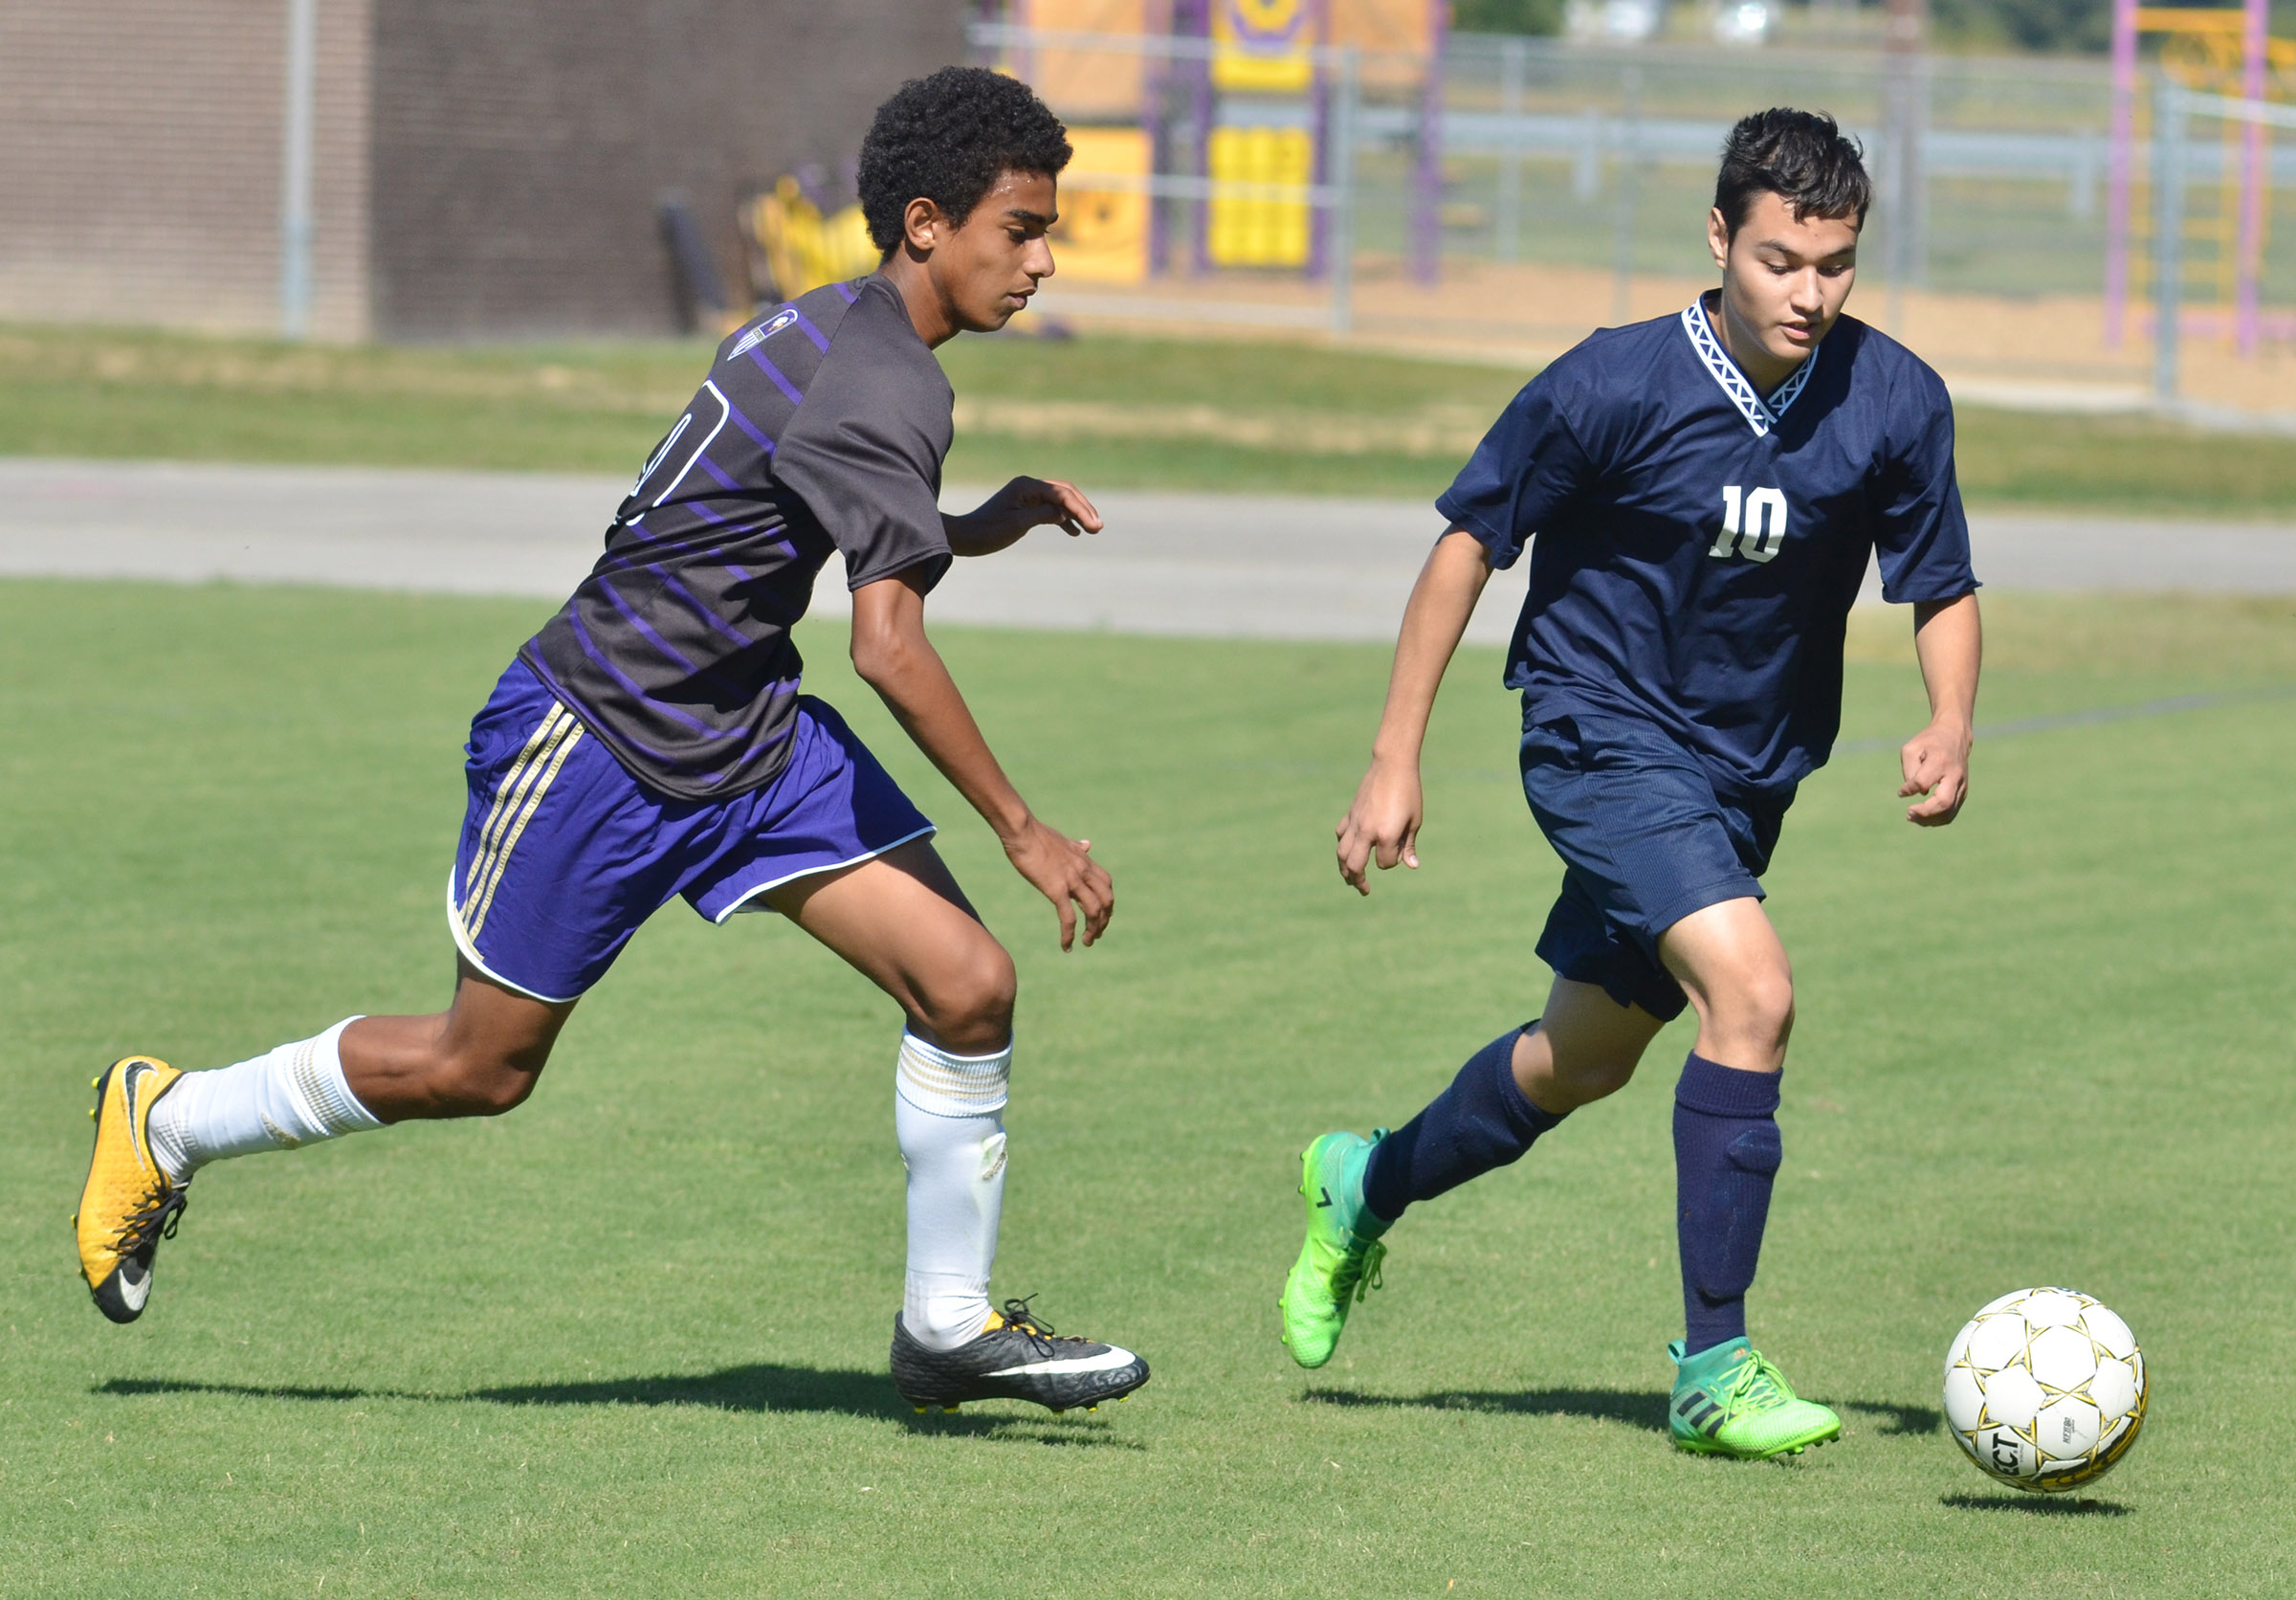 CHS sophomore David Silva runs for the ball.